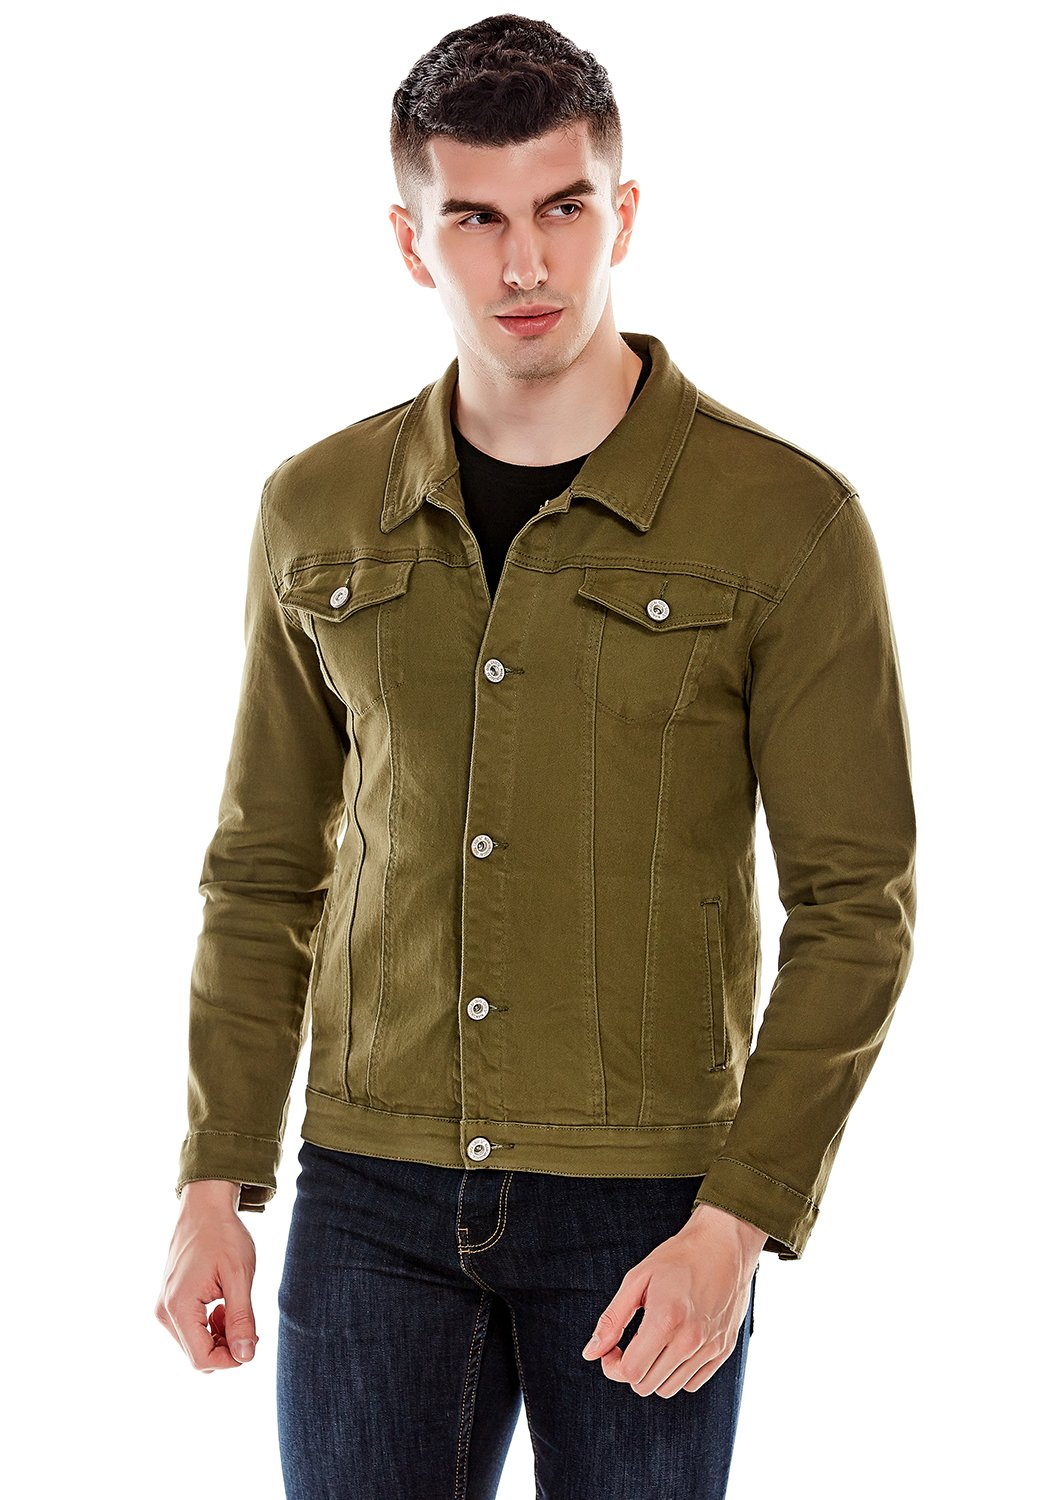 Idopy Men`s Casual Cowboy Rugged Jean Denim Biker Trucker Jacket (US L, Green) by Idopy